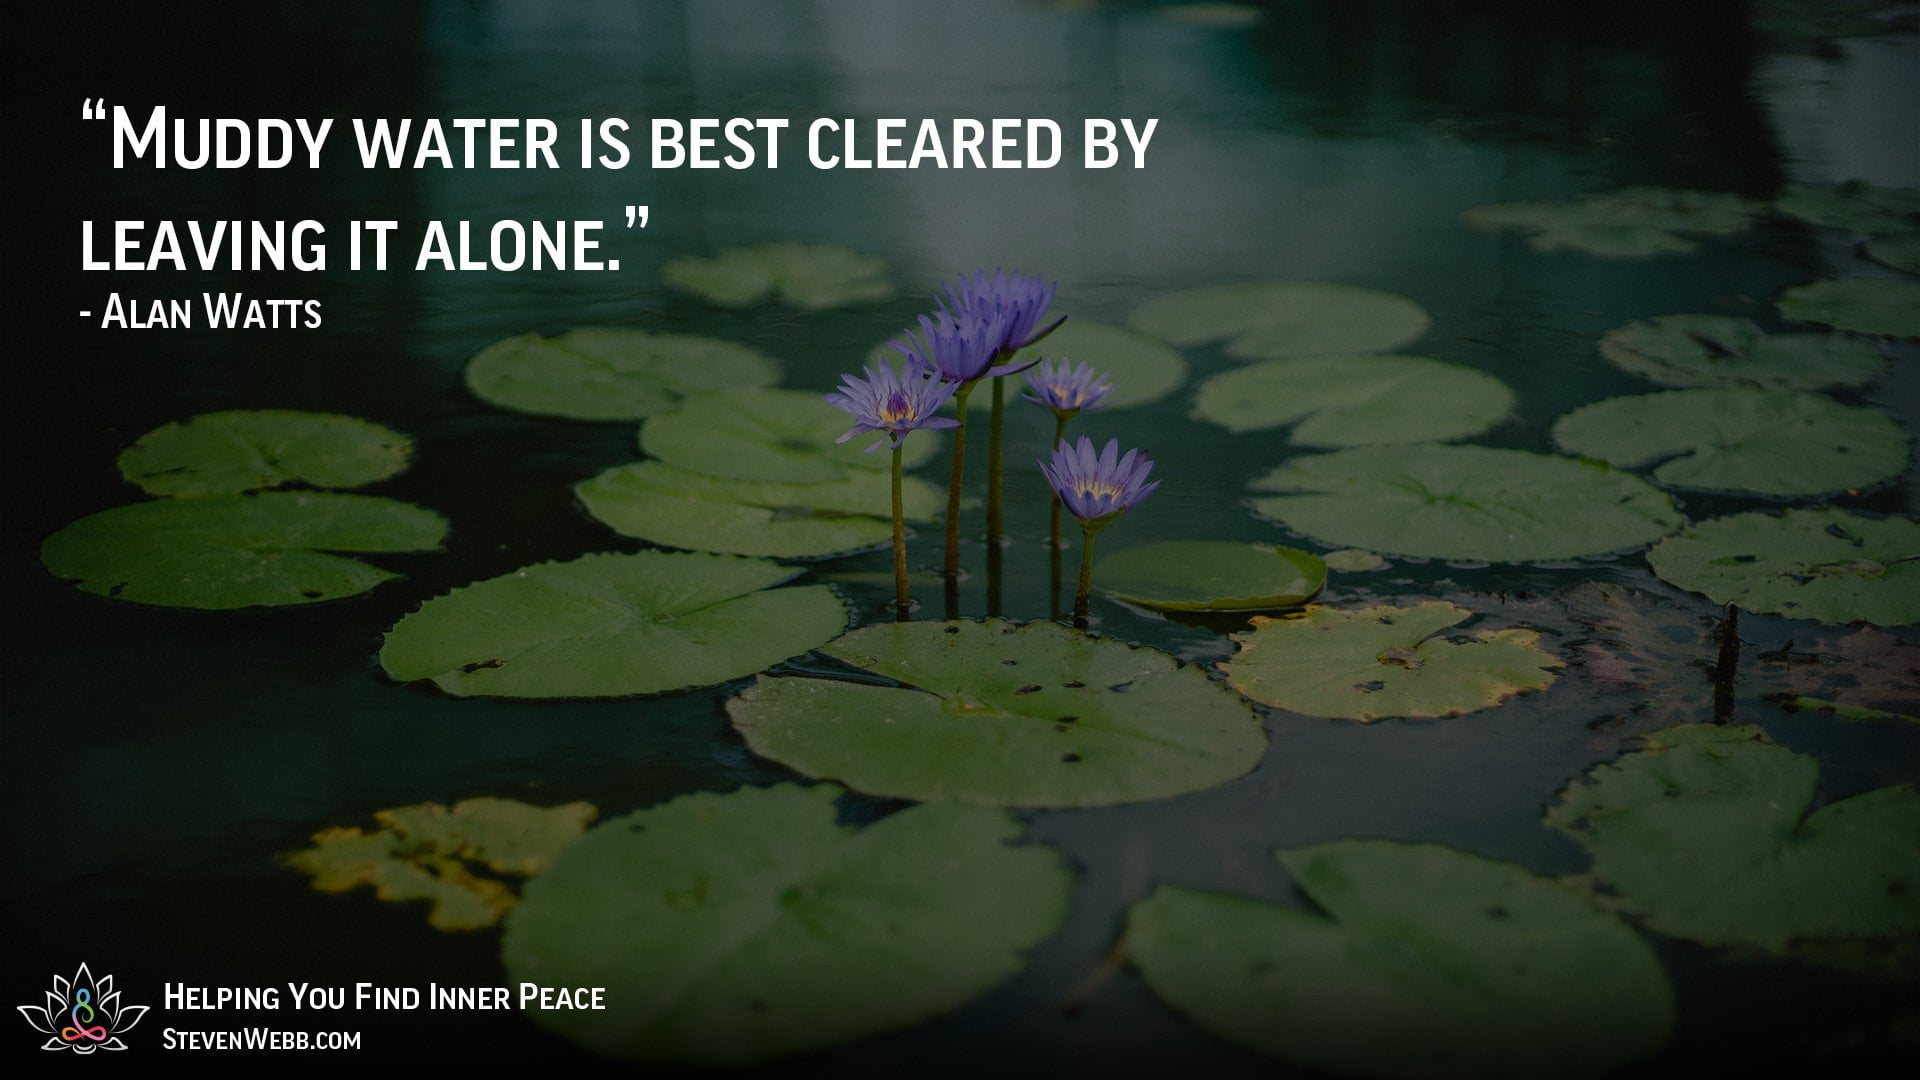 Find inner peace and happiness image quote